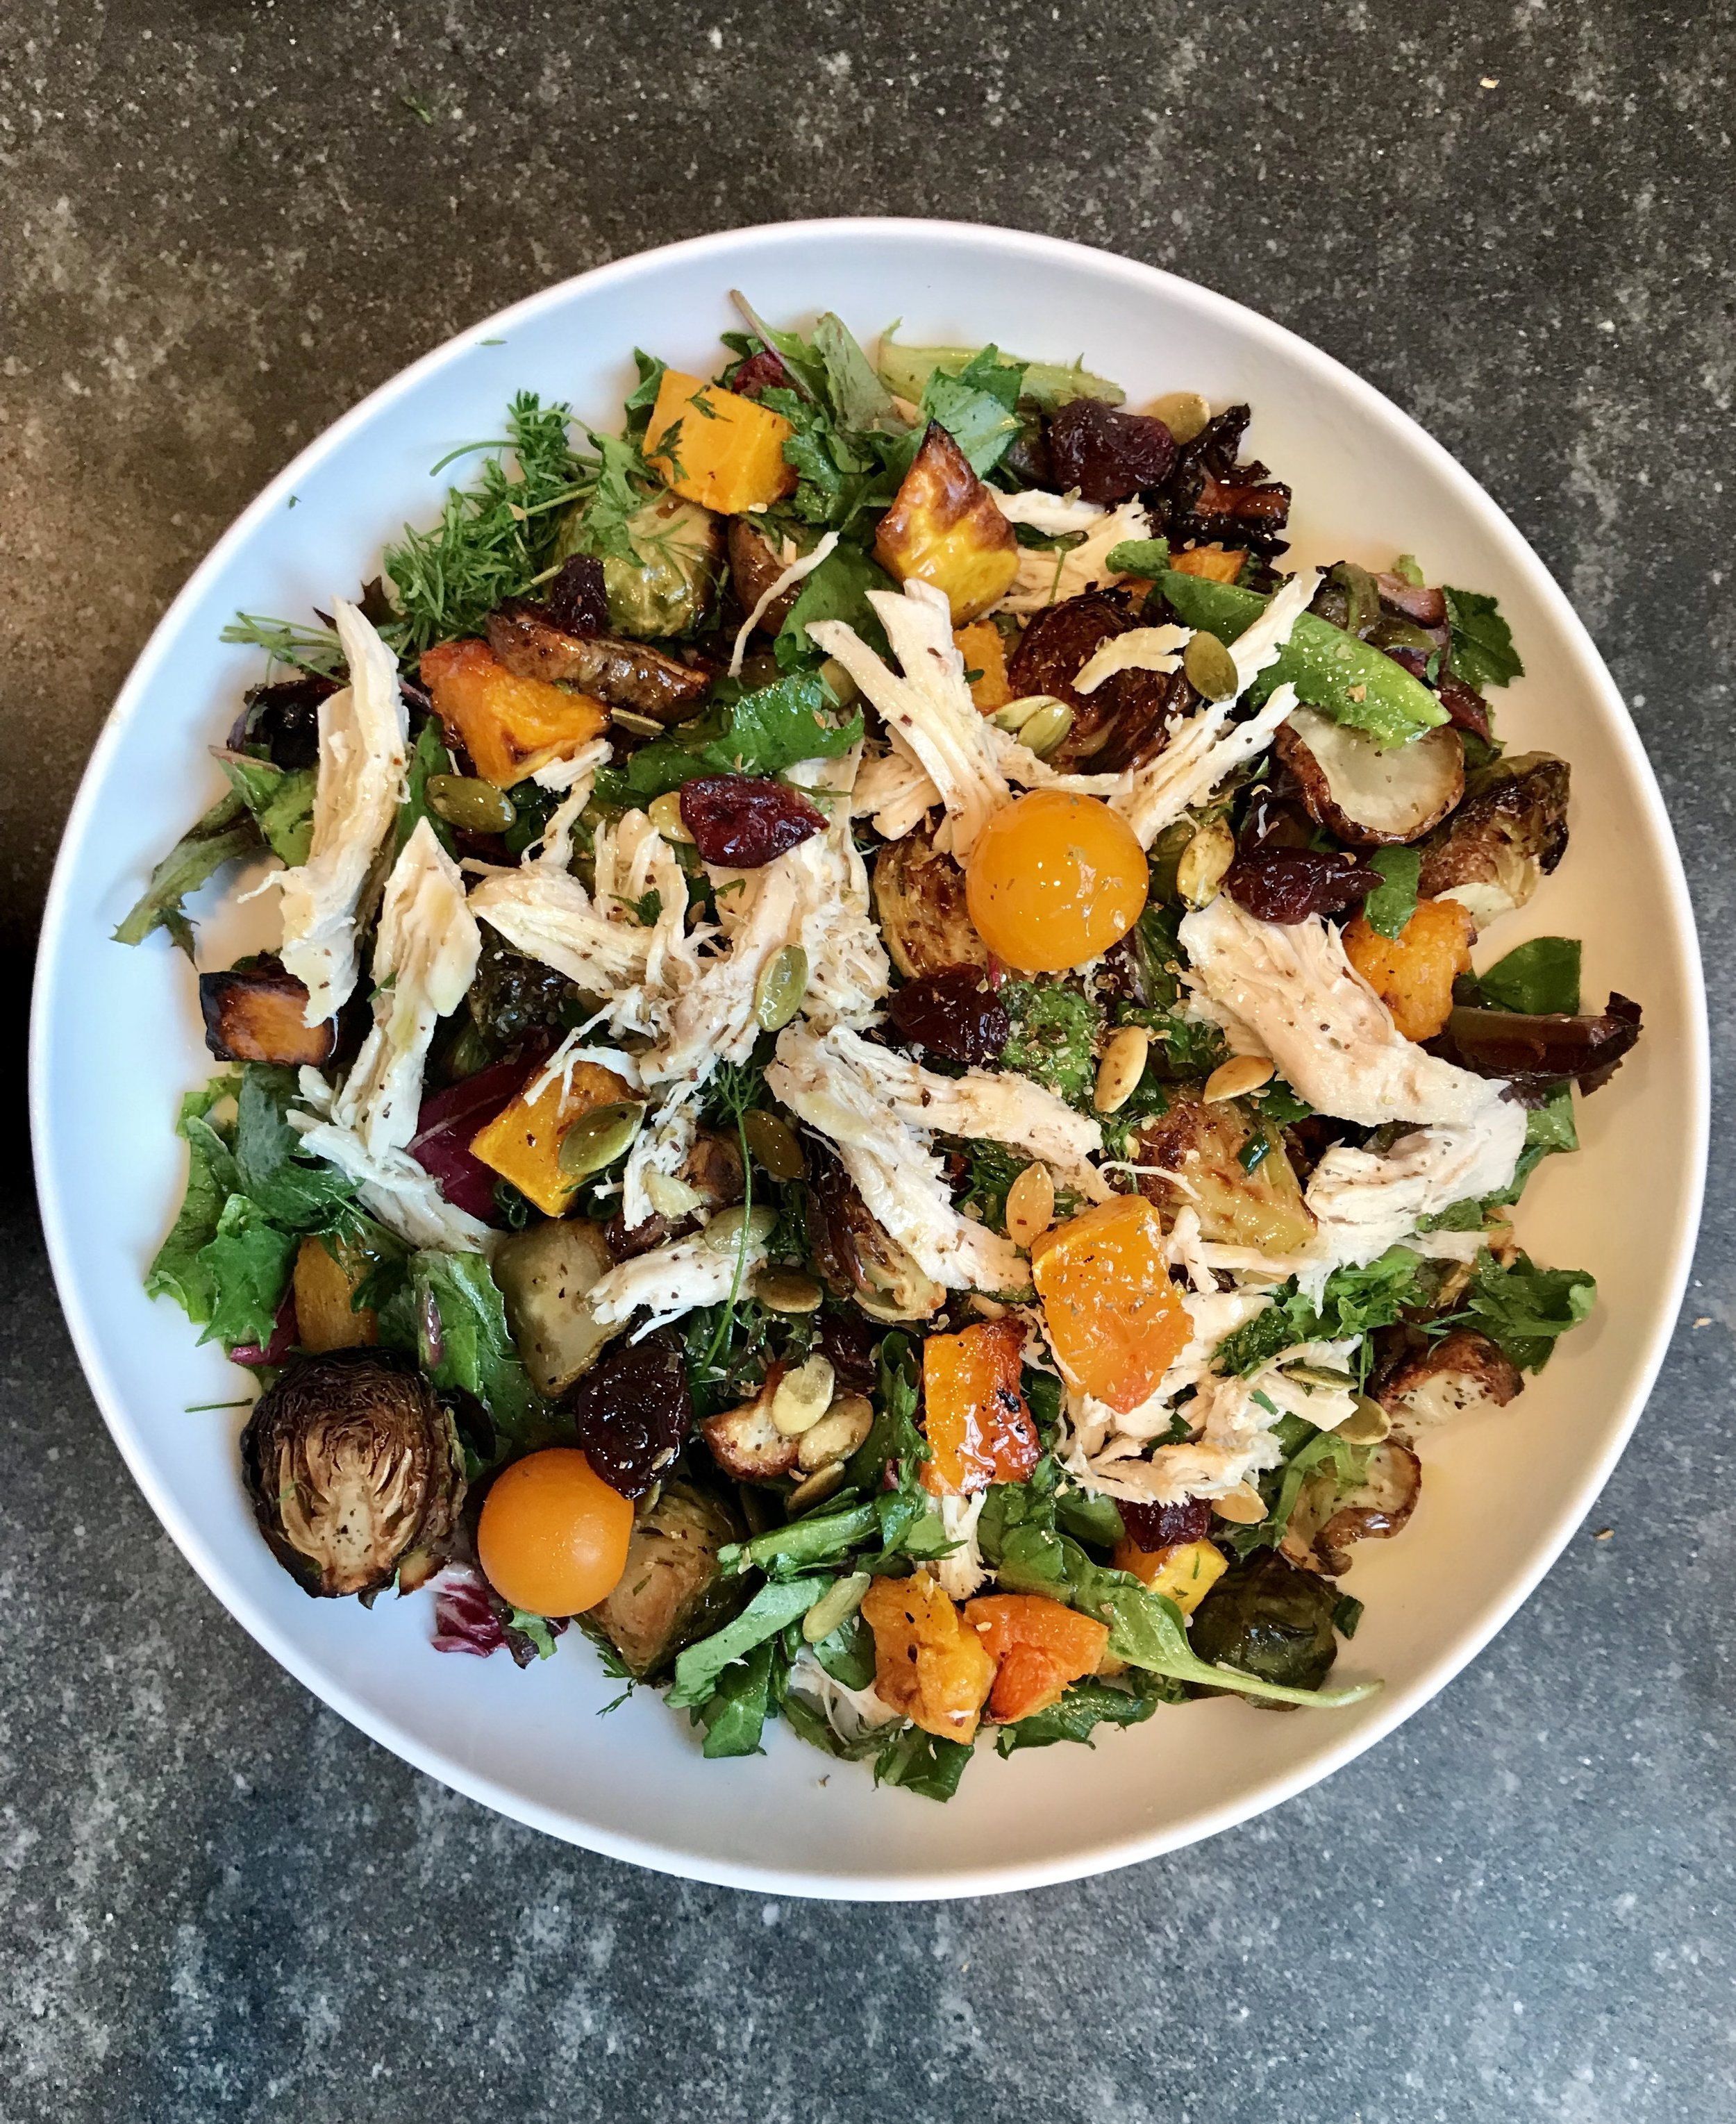 shredded chicken salad.jpg